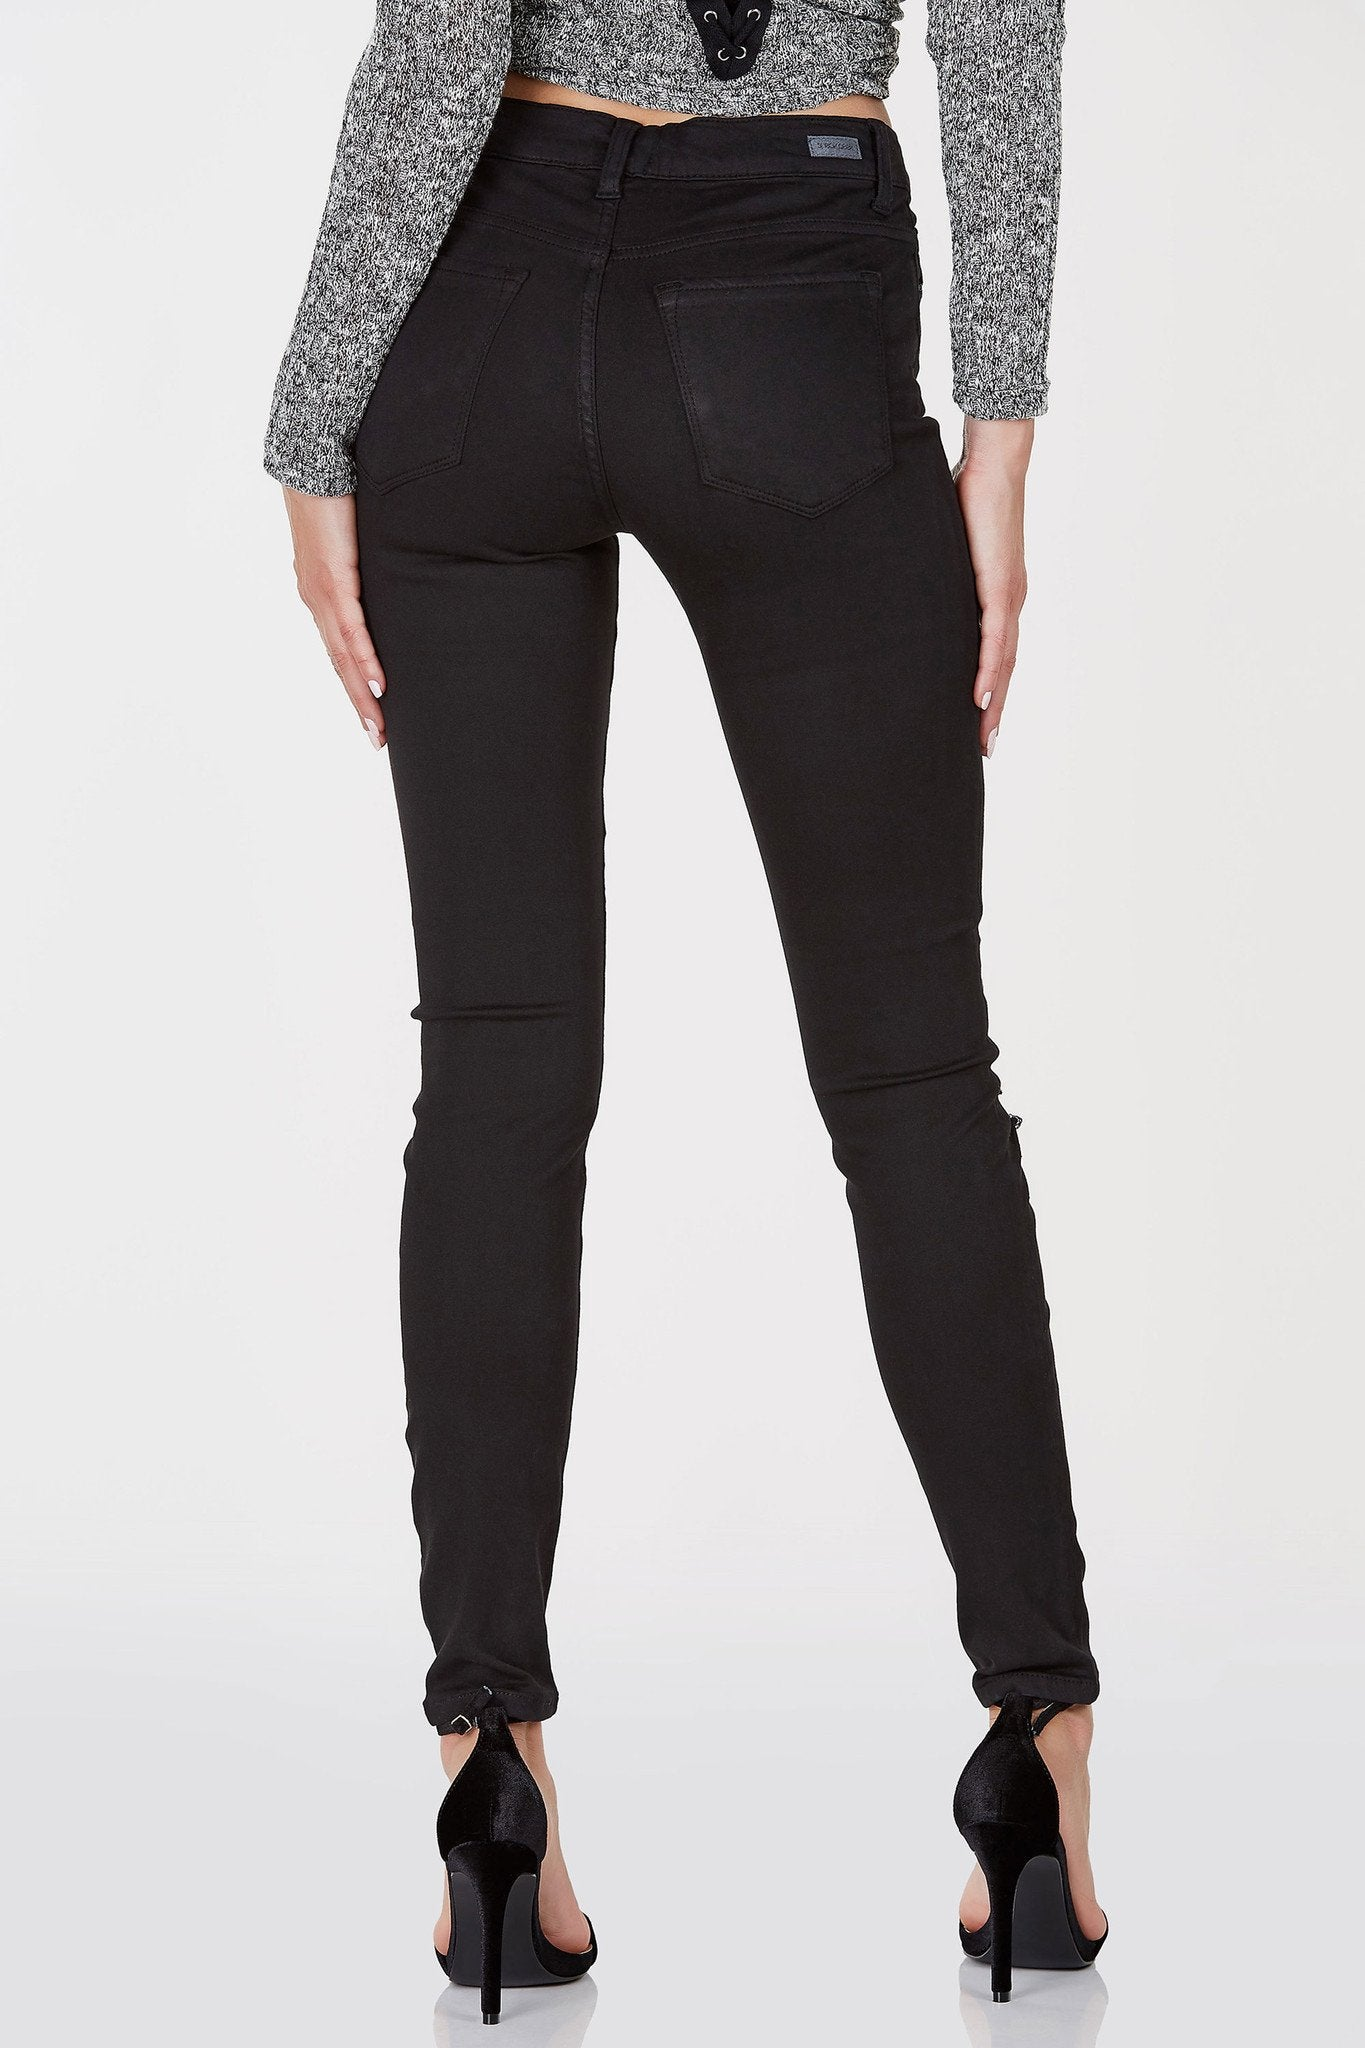 A classic pair of skinny jeans with trendy rips throughout the front. Stretchy material with a comfortable, slim fit. Mid rise waist makes it versatile to style with just about any style of top!